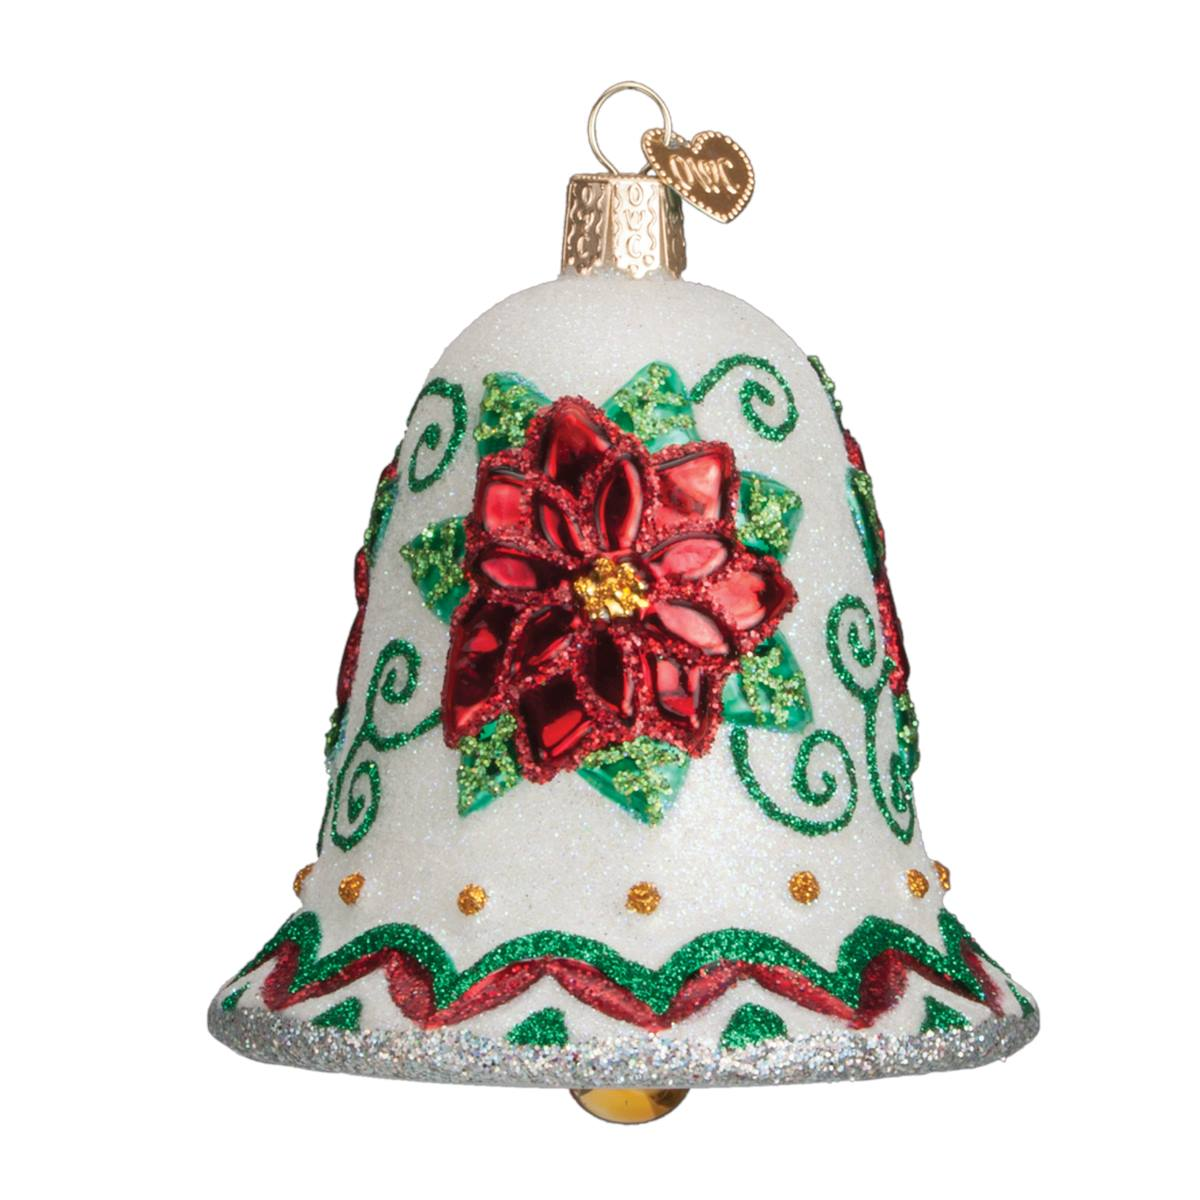 Poinsettia Bell Ornament - Traditions